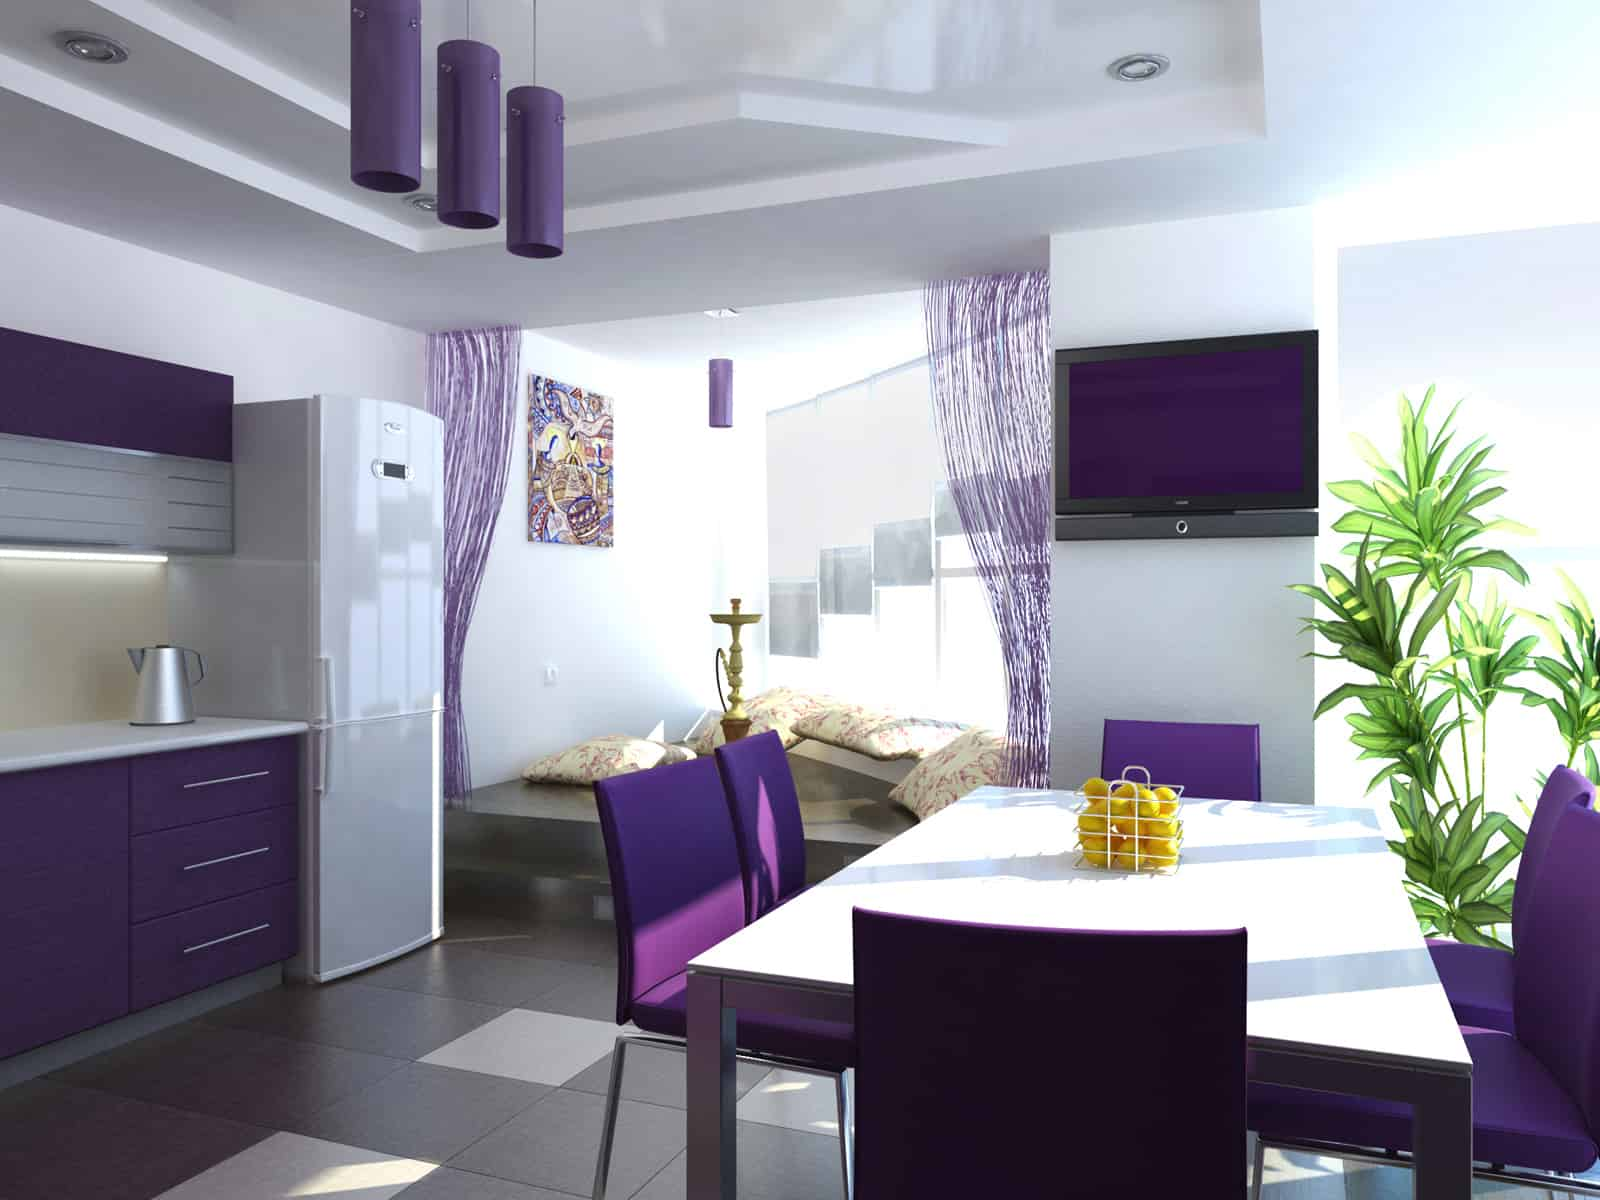 Interior design trends 2017 purple kitchen Home interior sconces